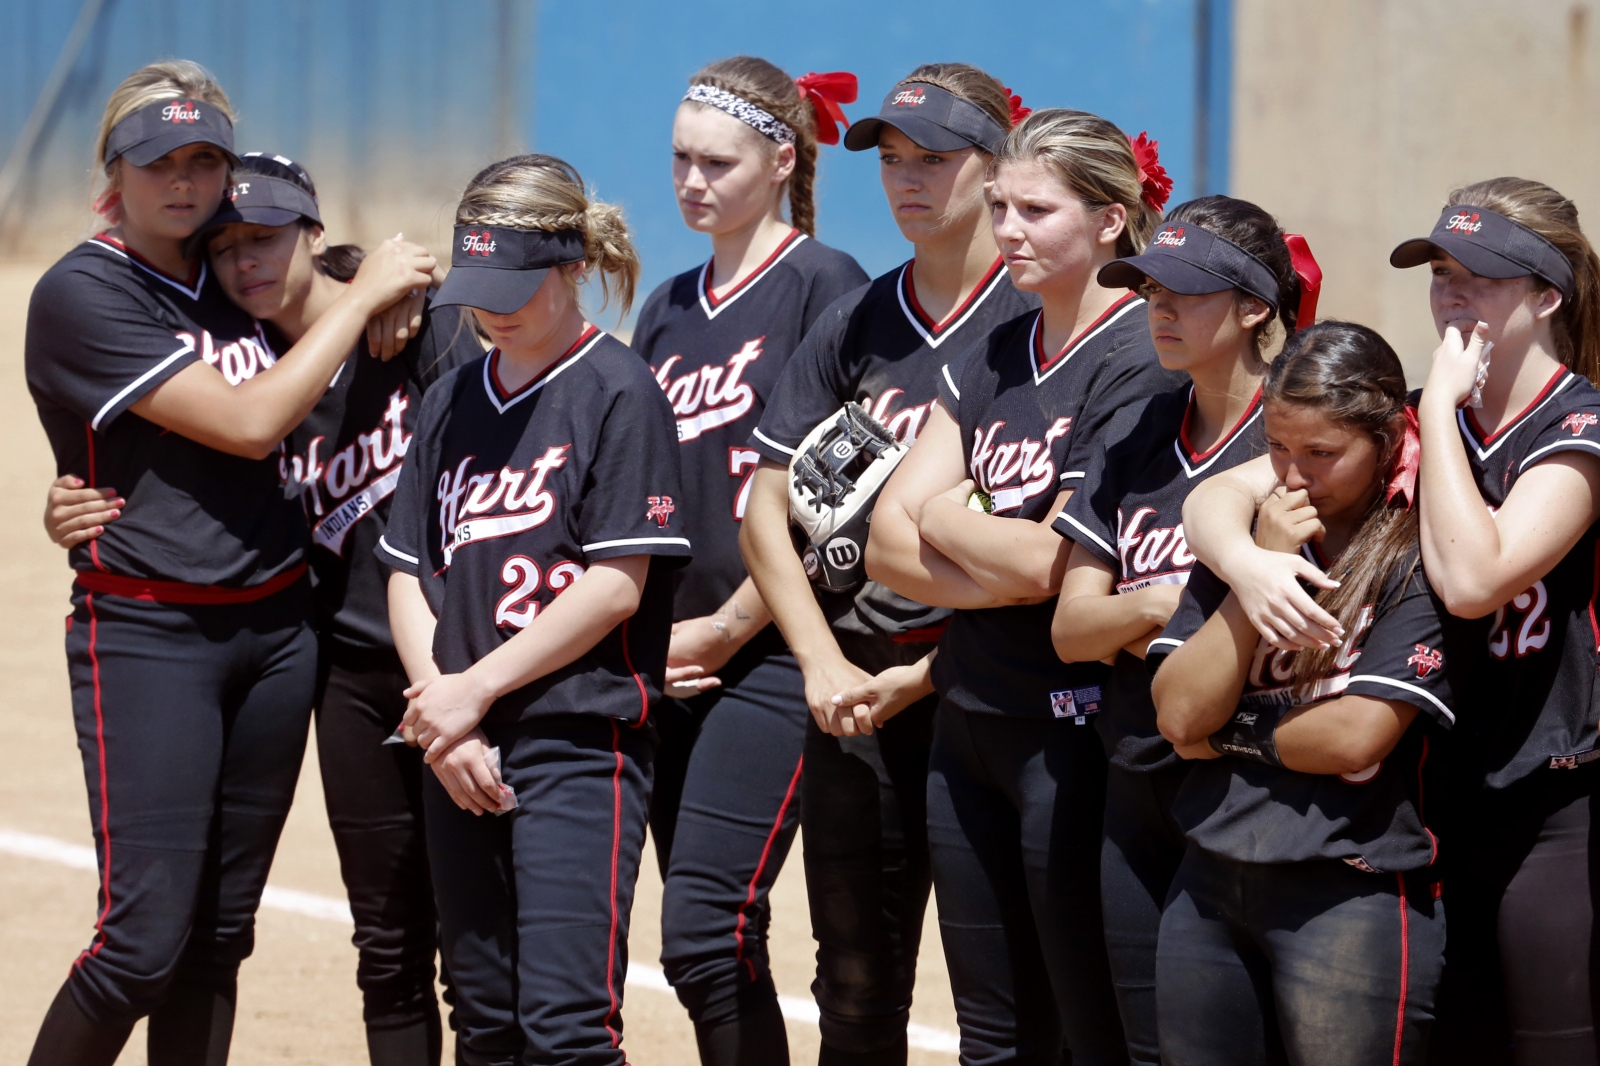 The Hart varsity softball team mourns their loss to Murrieta Mesa during the CIF Southern Section softball championship game in Irvine on Saturday, June 3, 2017. Katharine Lotze/The Signal